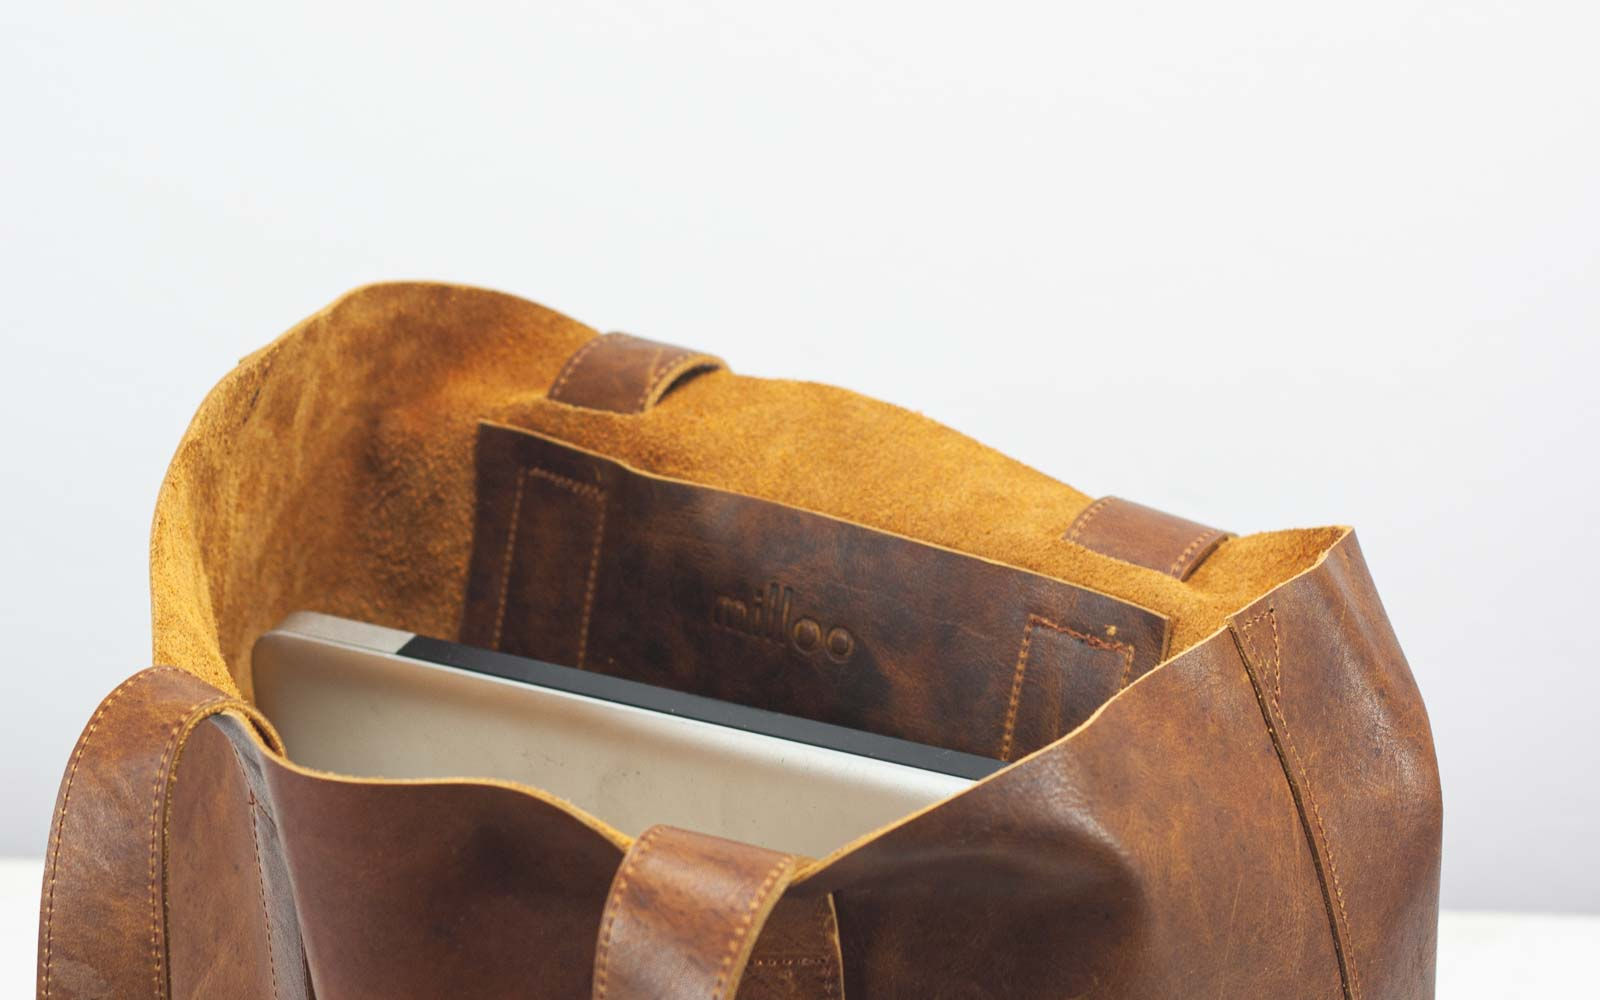 The Calisto tote bag in brown distressed leather made by milloo